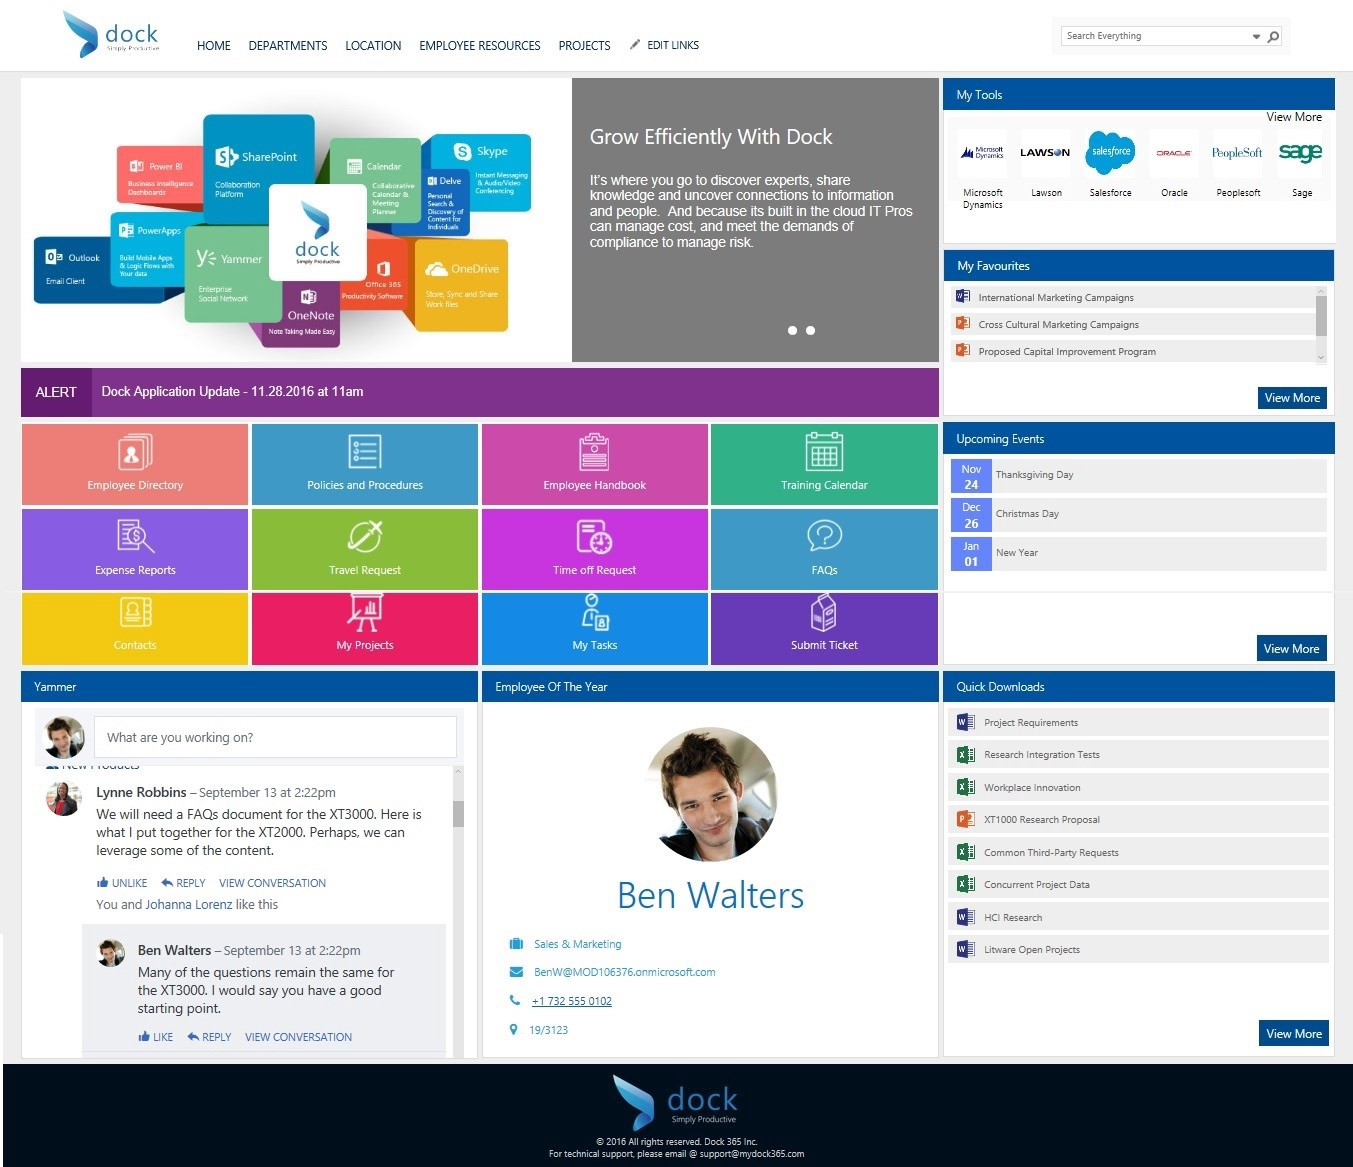 Why sharepoint online for your company intranet dock for Company intranet template